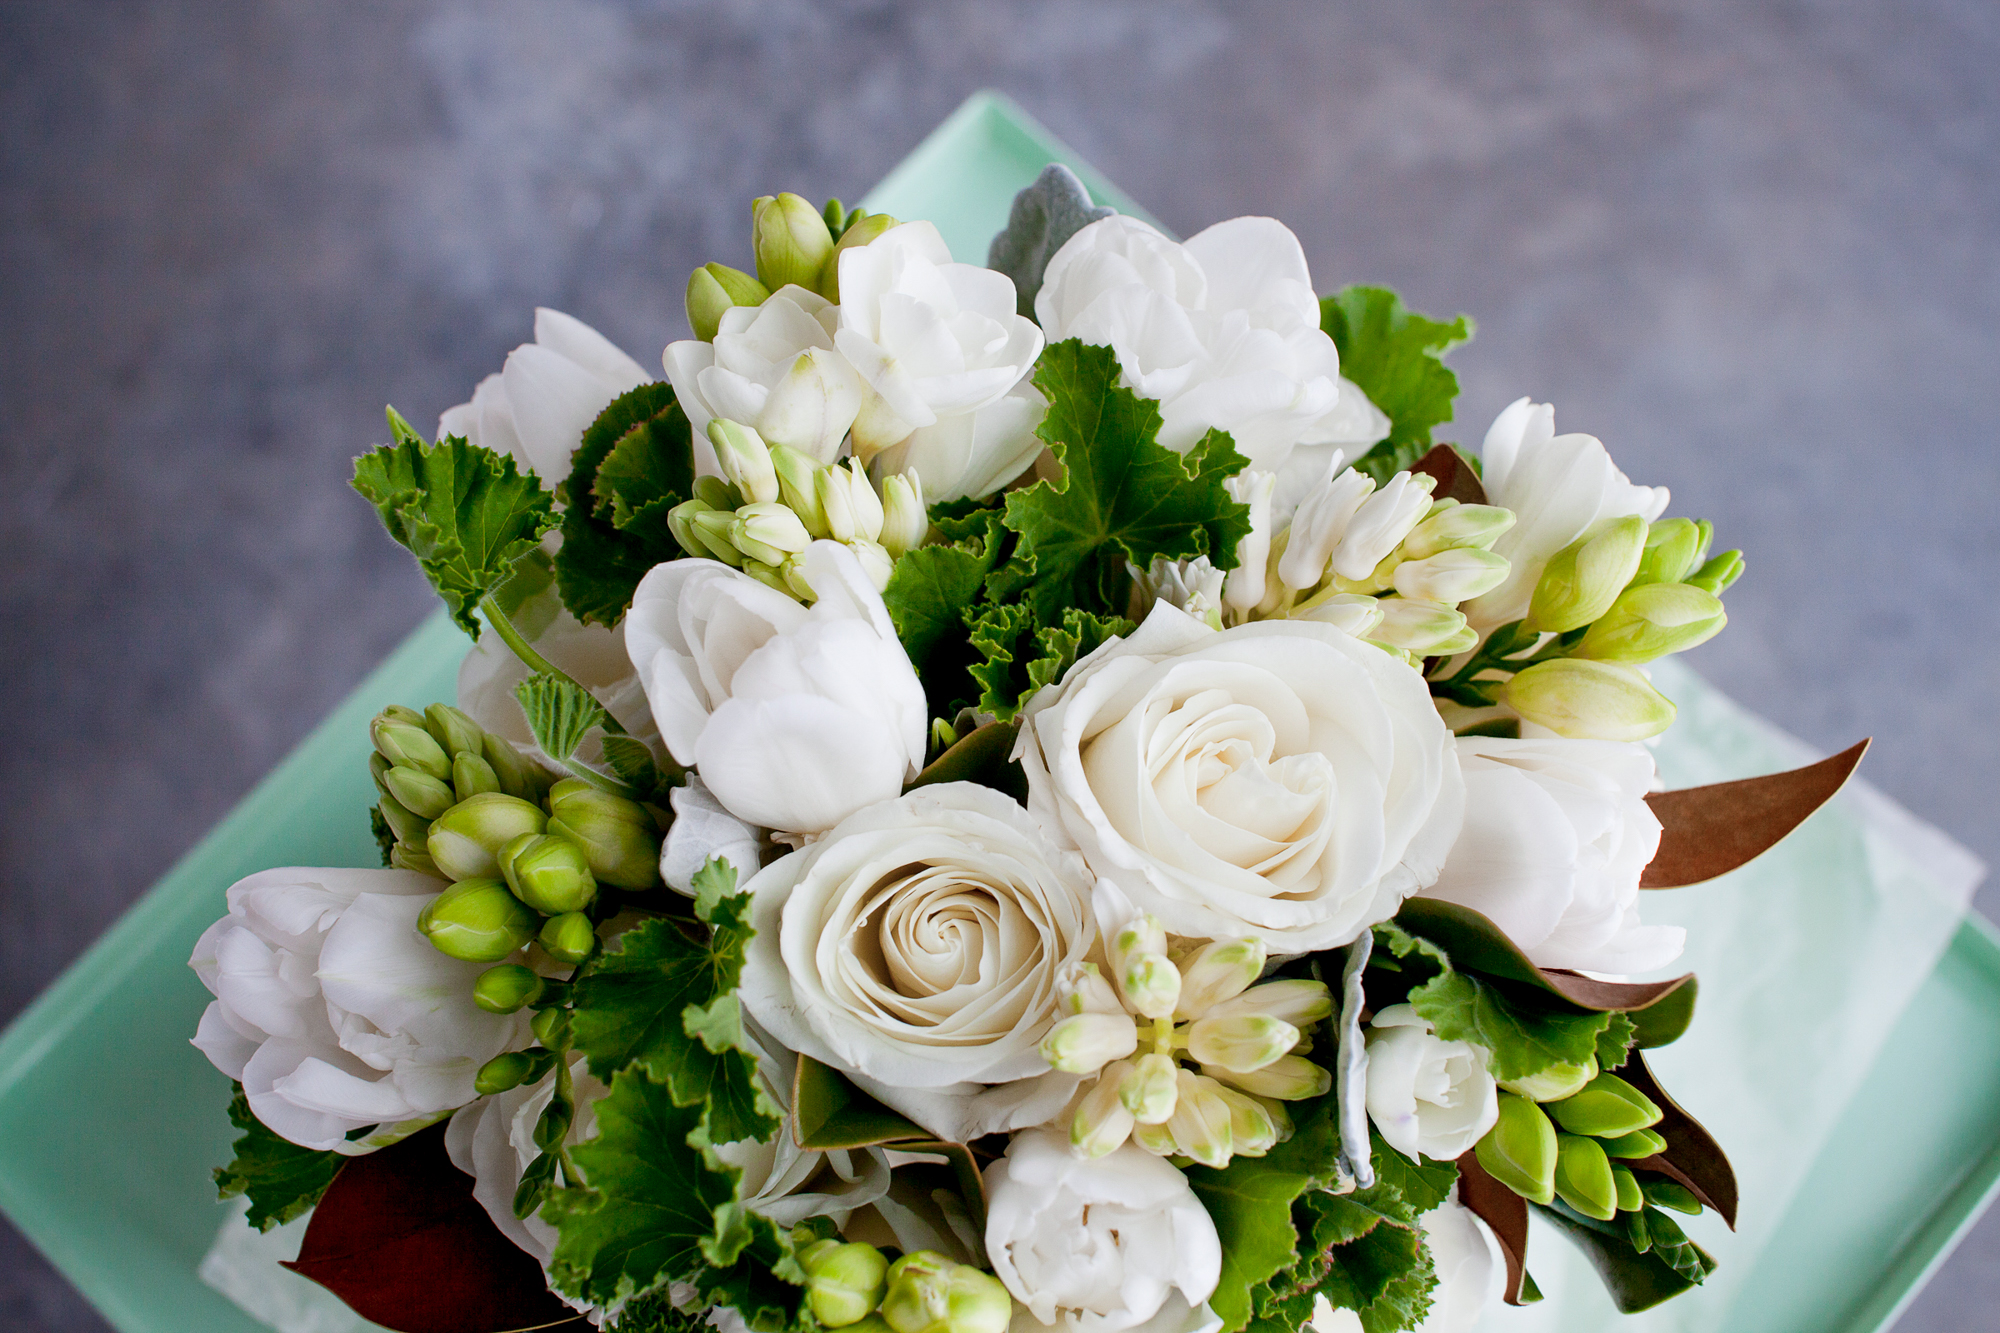 005_CarlyGaebe_SteadfastStudio_WeddingPhotography_NewYorkCity_Brooklyn_WytheHotel_Retro_Bouquet_WhiteRoses_Greenery.jpg